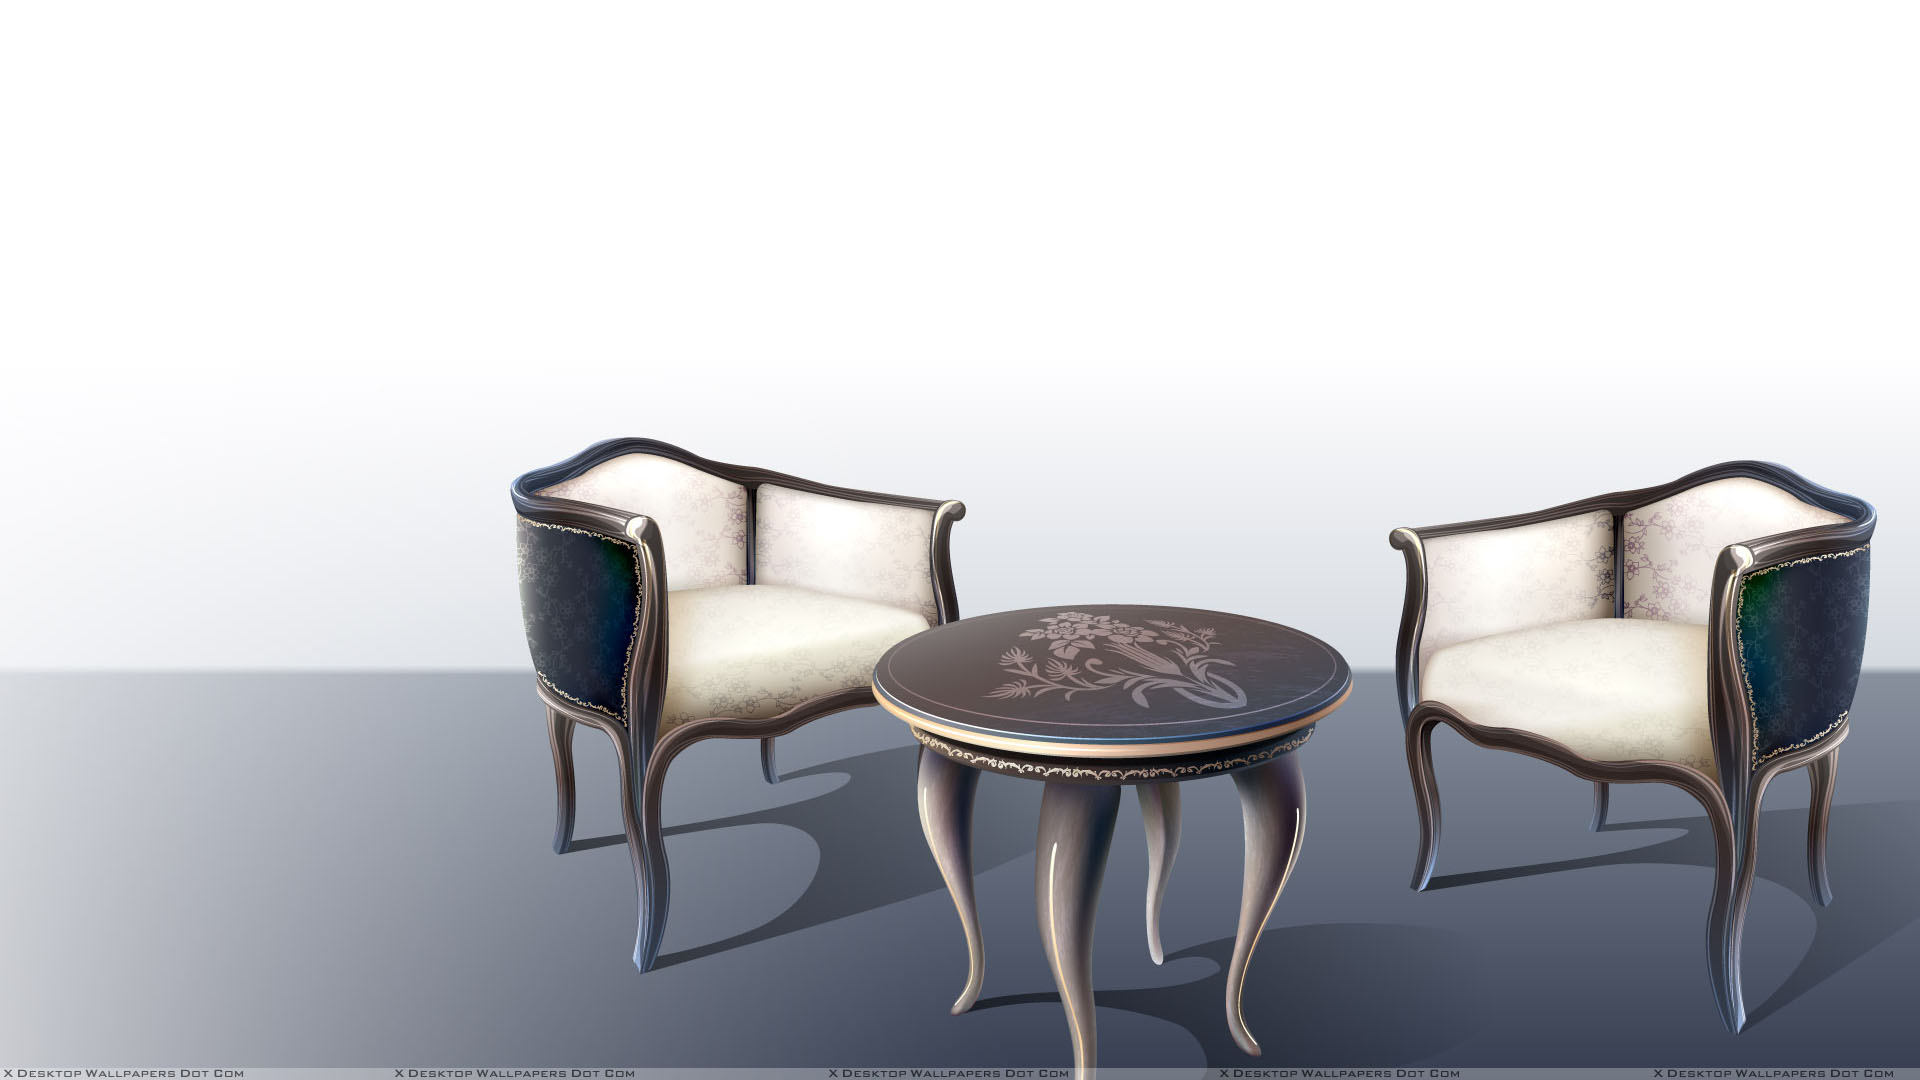 Two Chairs And Table With White Background Wallpaper